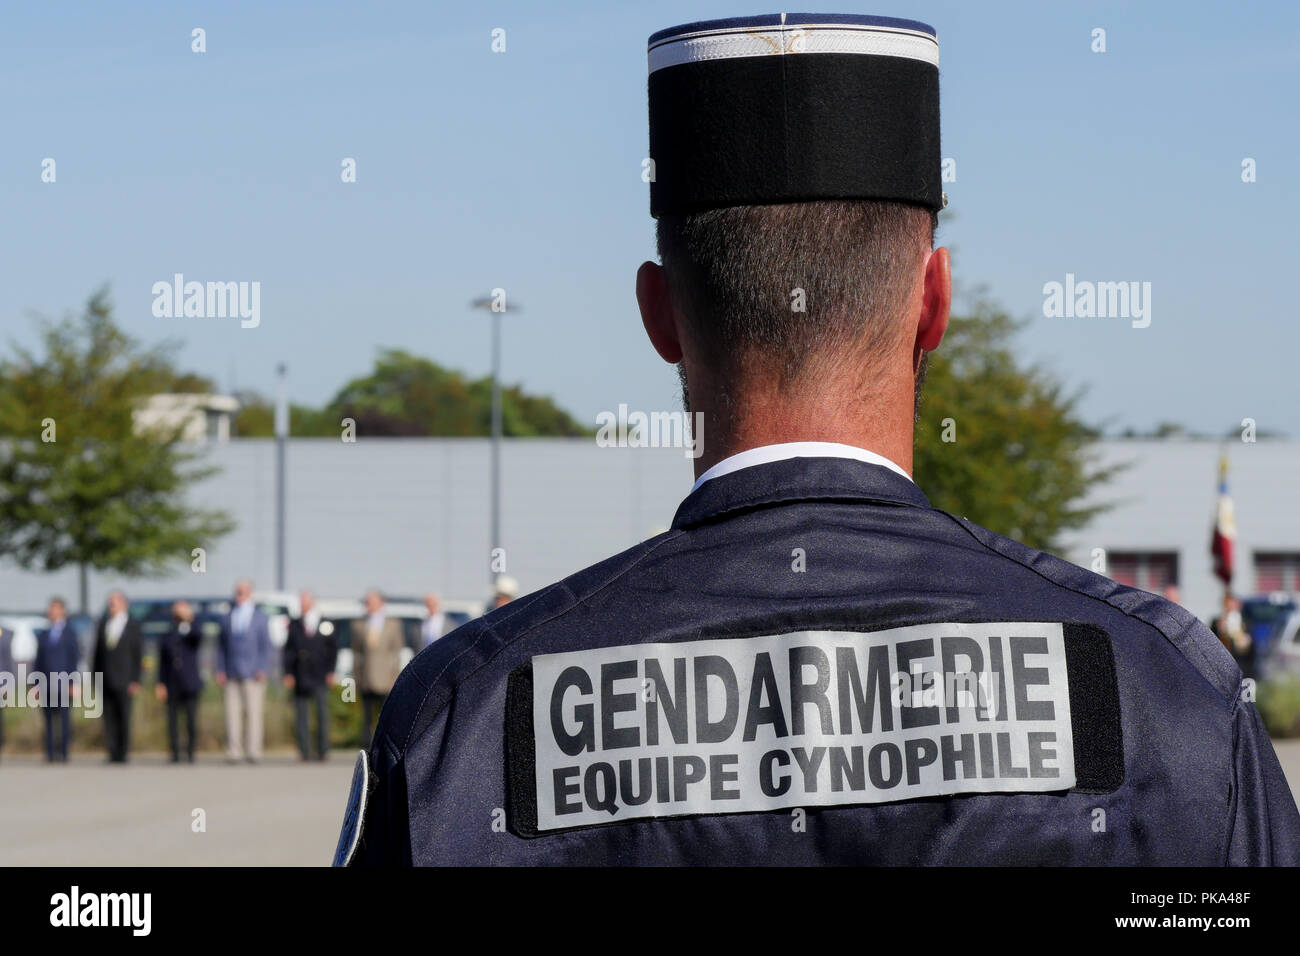 Police Dog Serviceman from french National Gendarmery takes part in a military ceremony, Sathonay-Camp, France - Stock Image